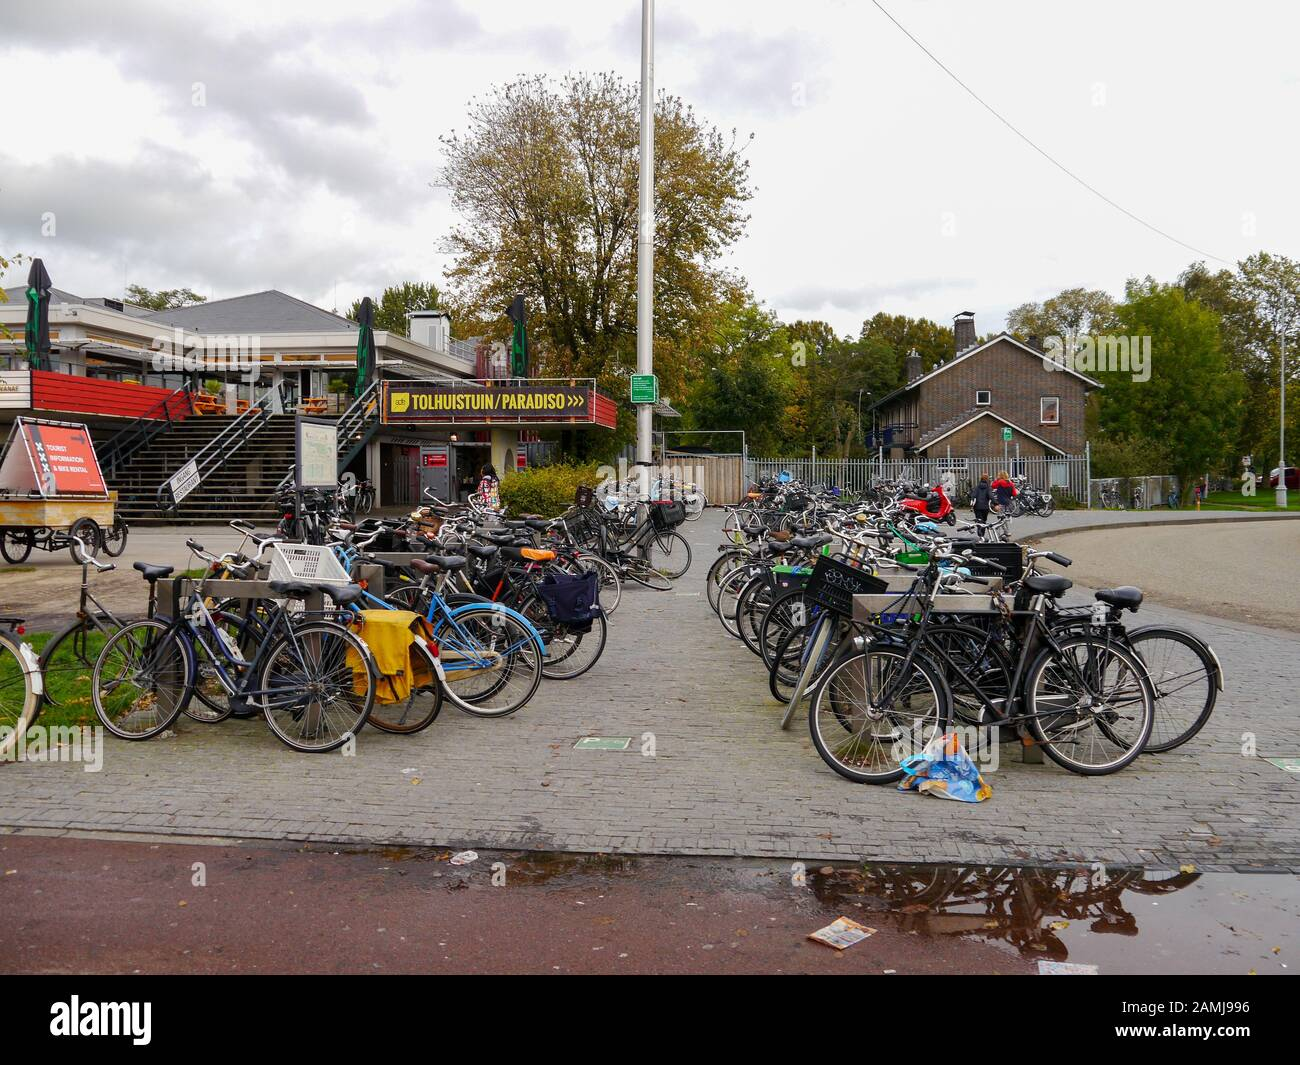 A bike park in Amsterdam, Netherlands Stock Photo